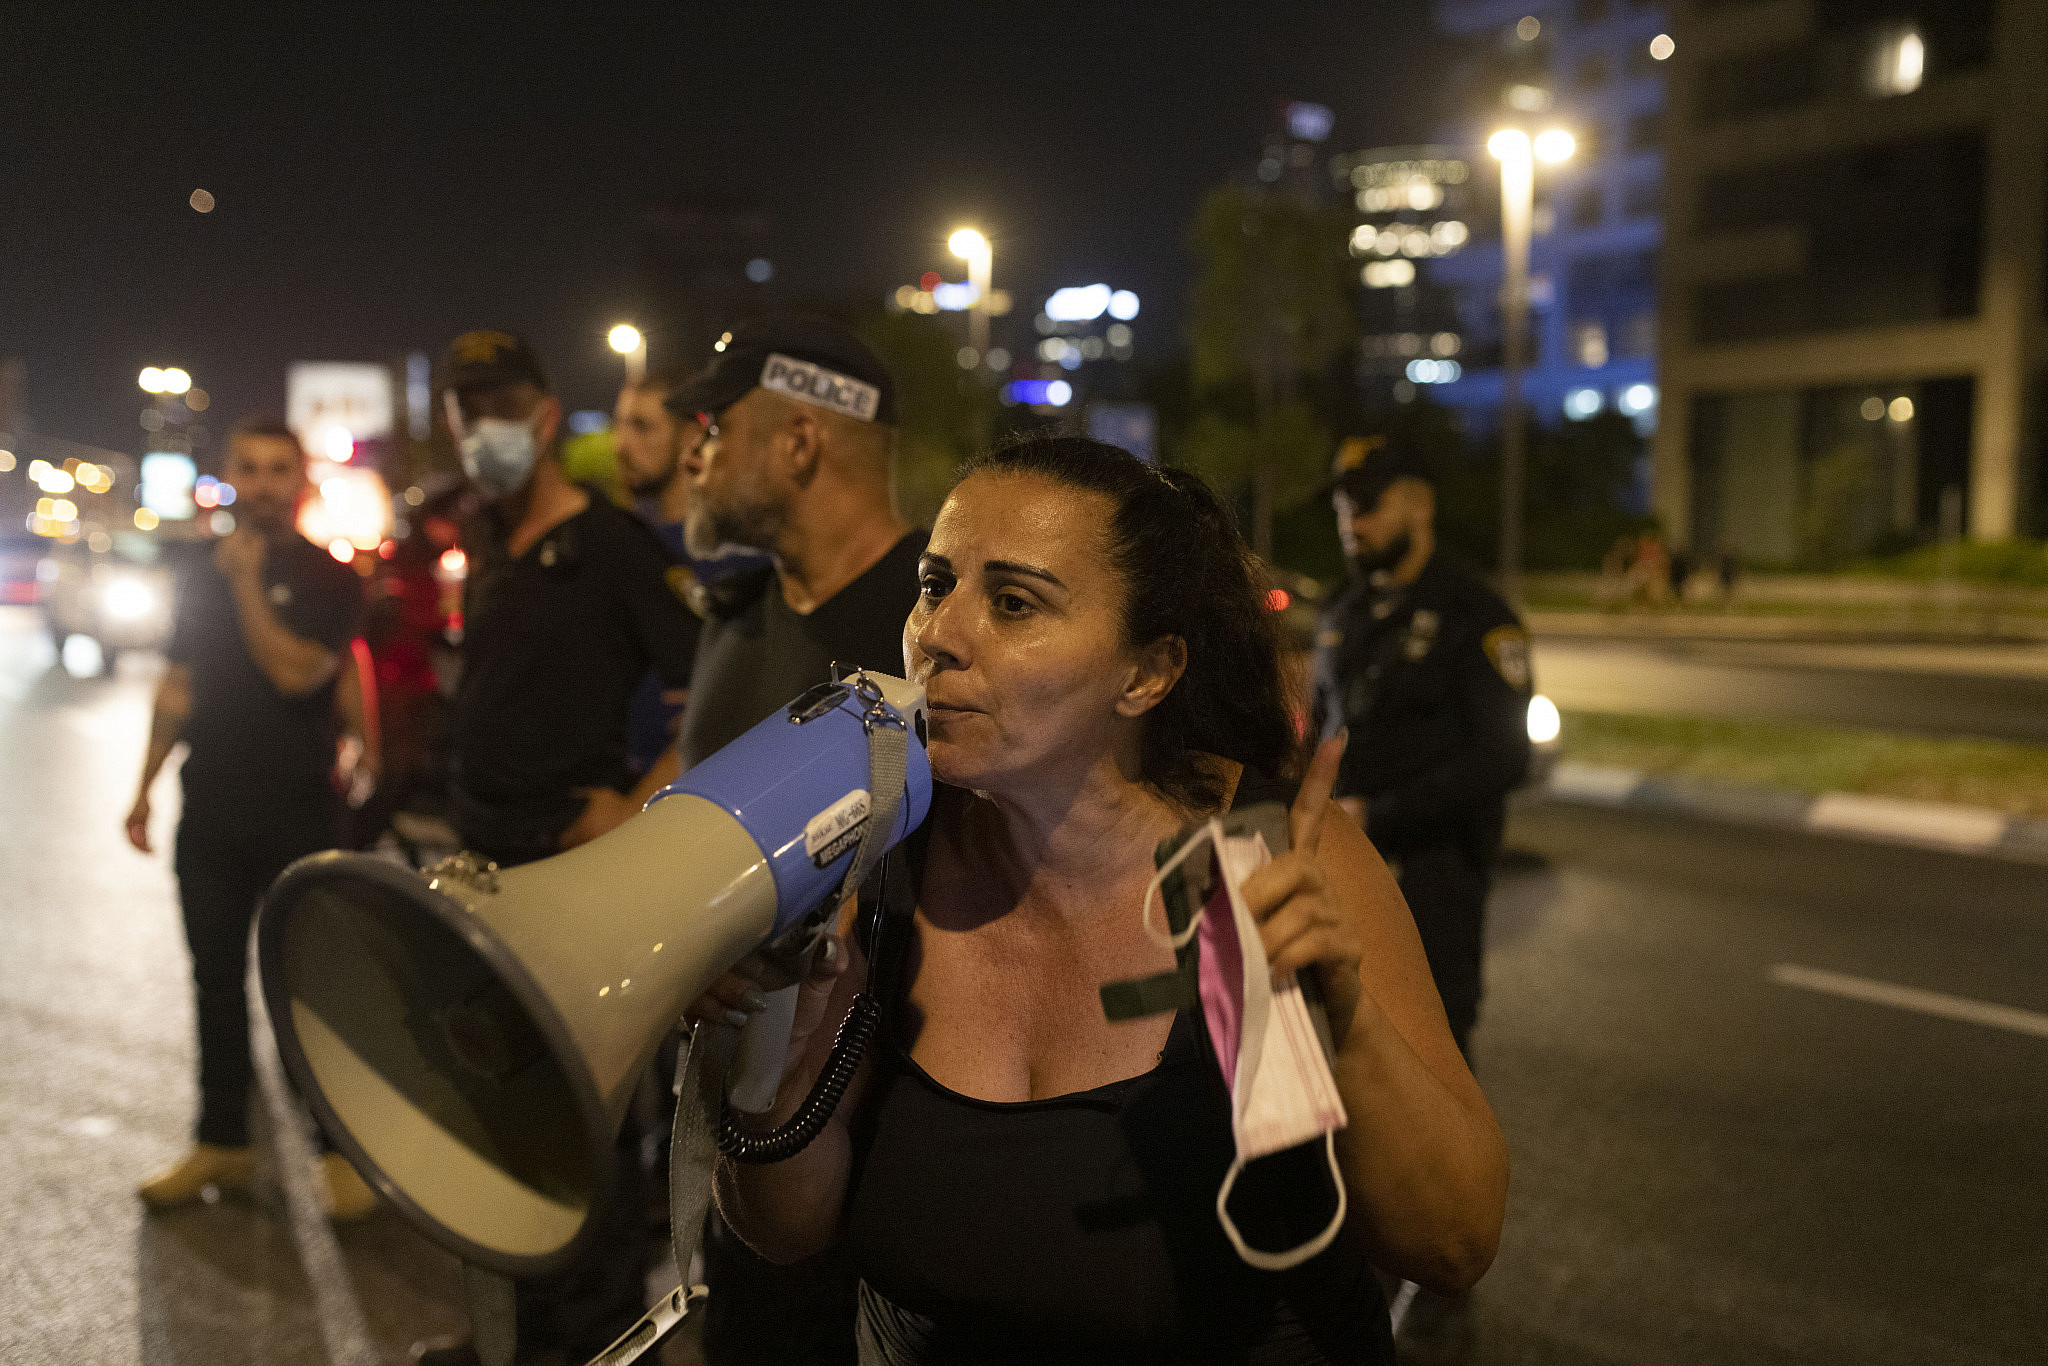 Mali Alfasy-Fihamin leads a demonstration in north Tel Aviv against the eviction and forced displacement of the residents of Givat Amal, August 1, 2021. (Oren Ziv)